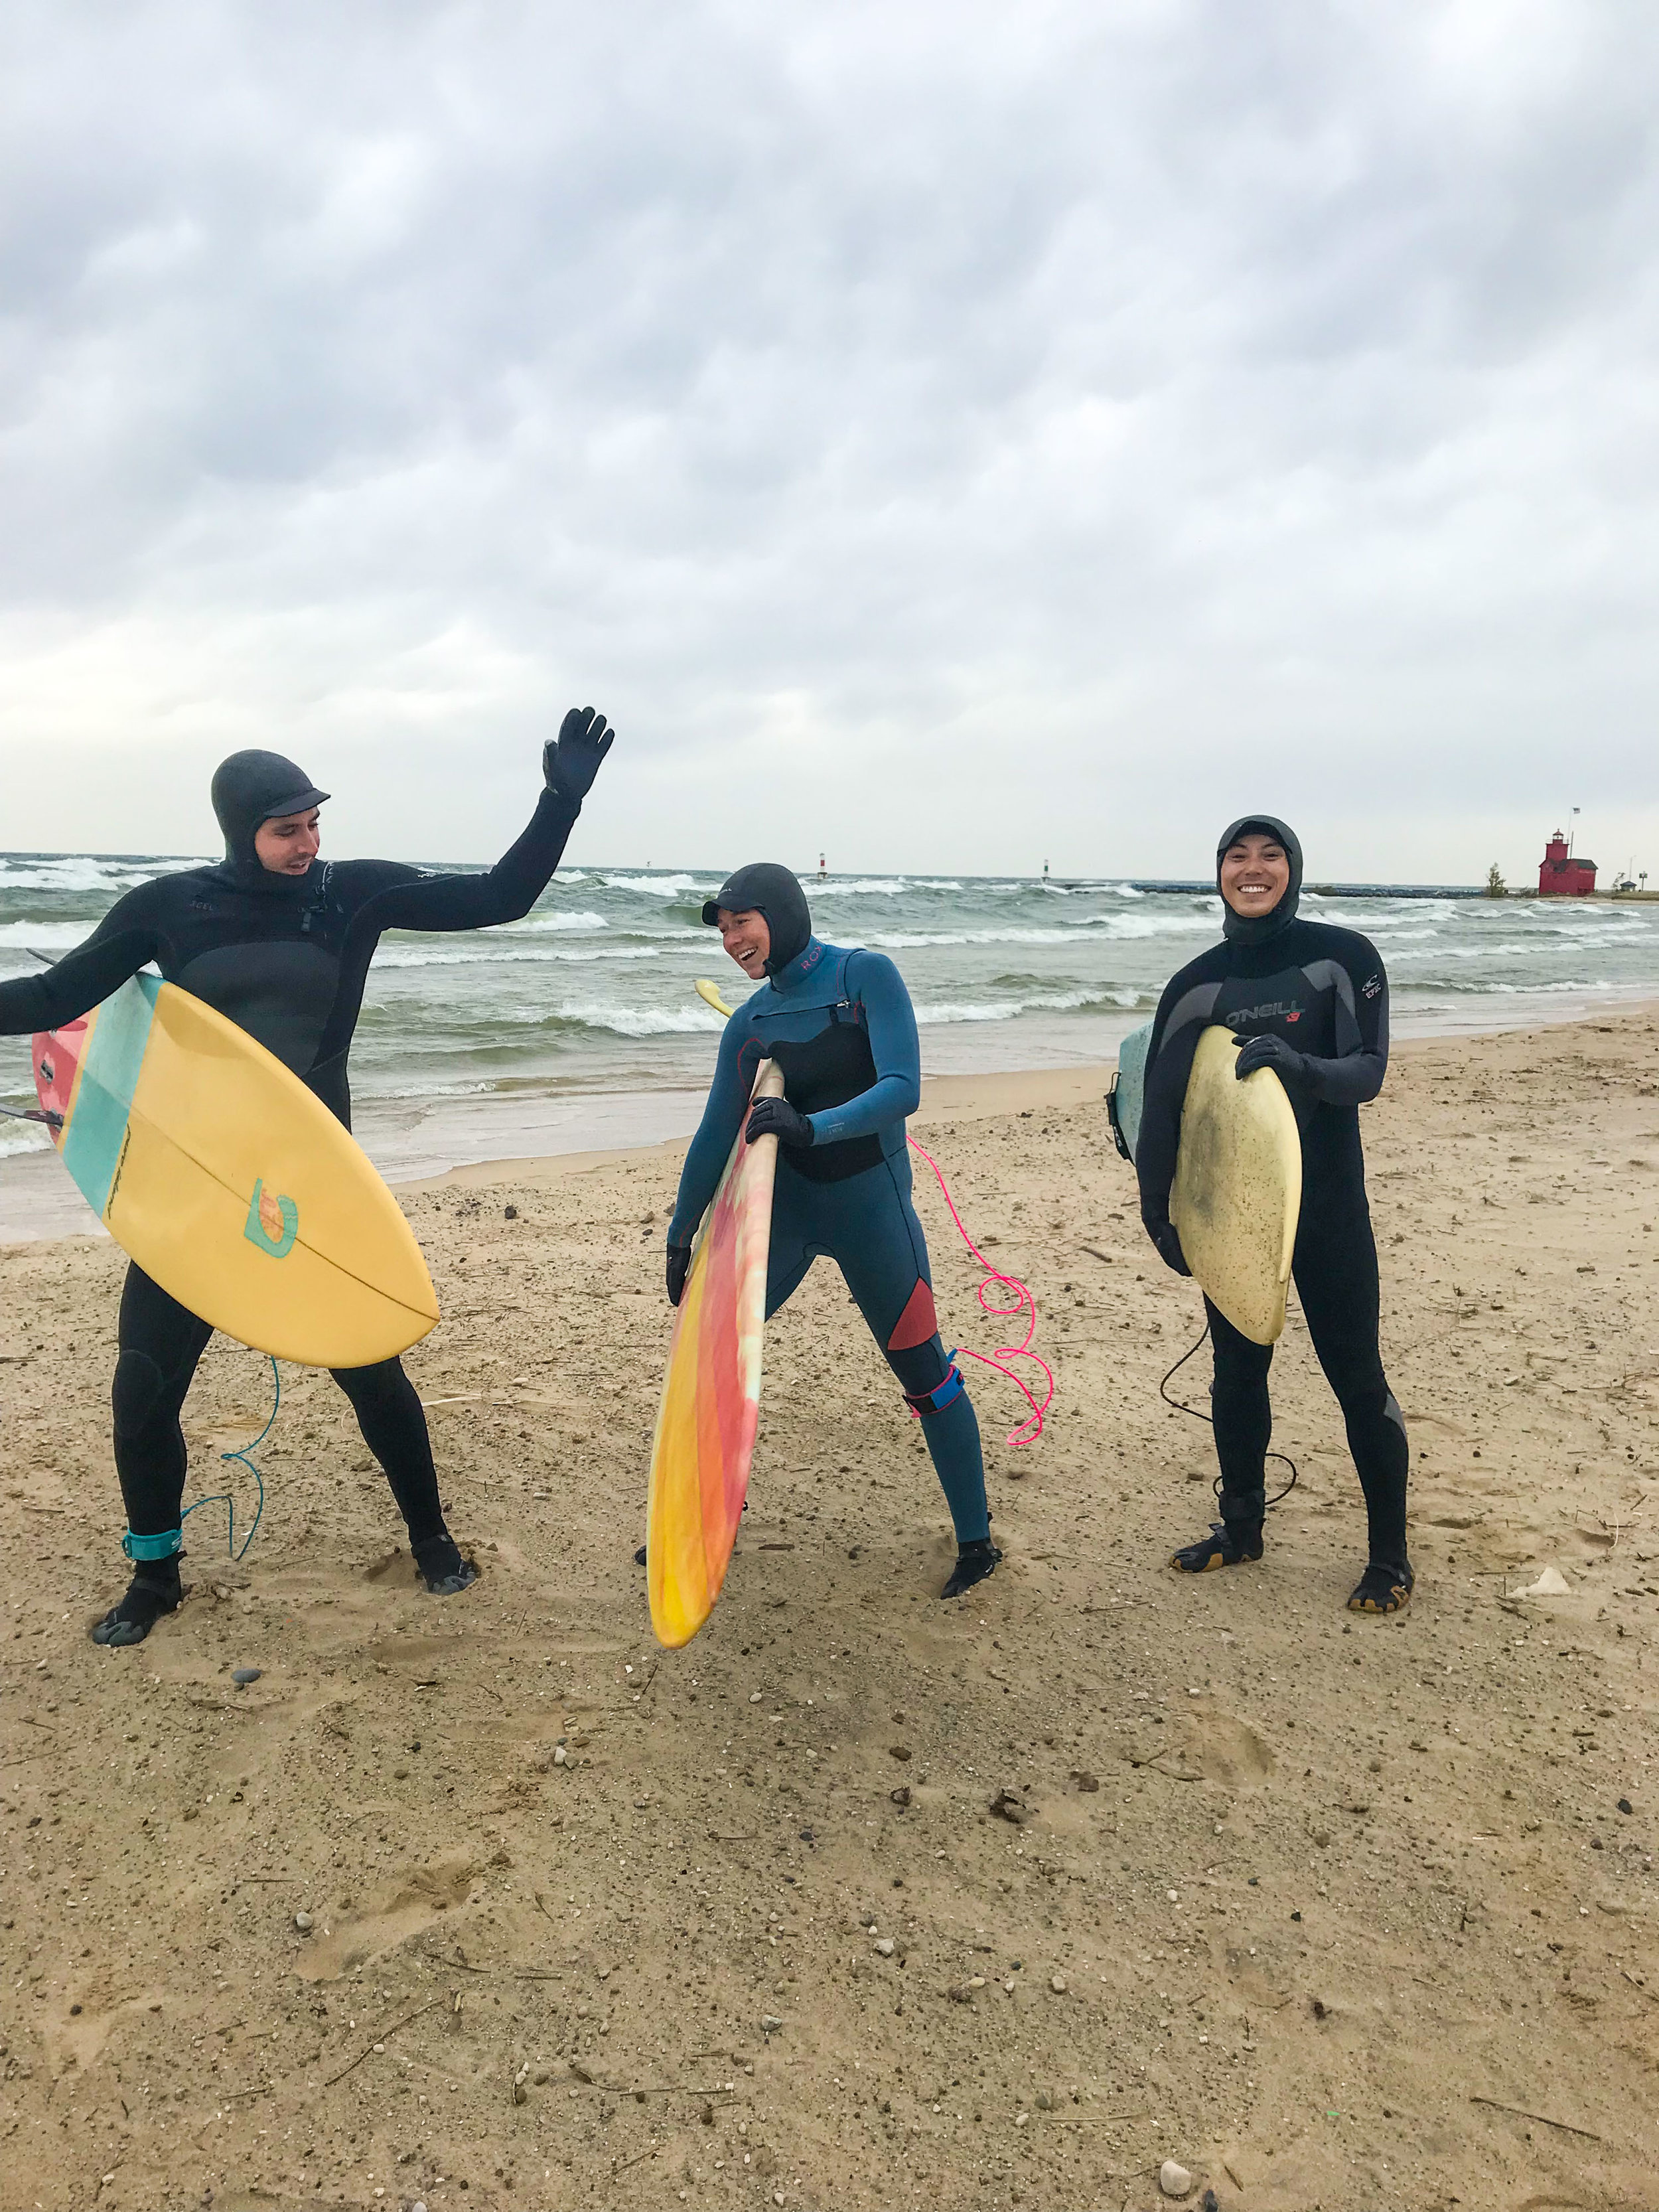 It was so windy you didn't have to hold the boards for them to stay in the air